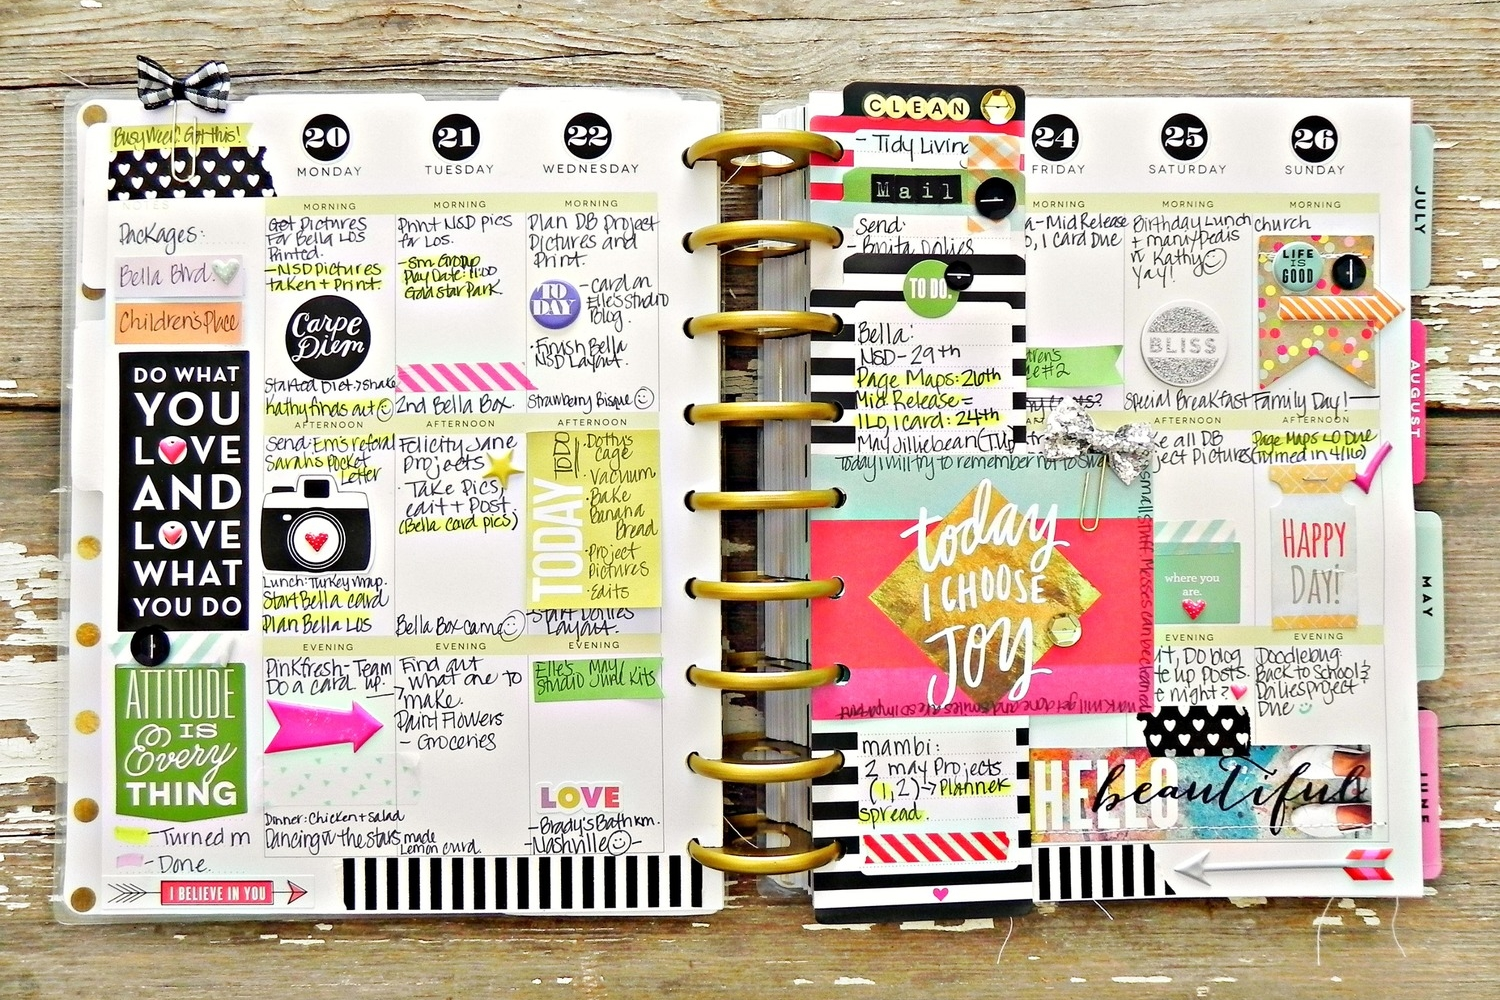 'Today I Choose Joy' colorful & layeredweekly spread